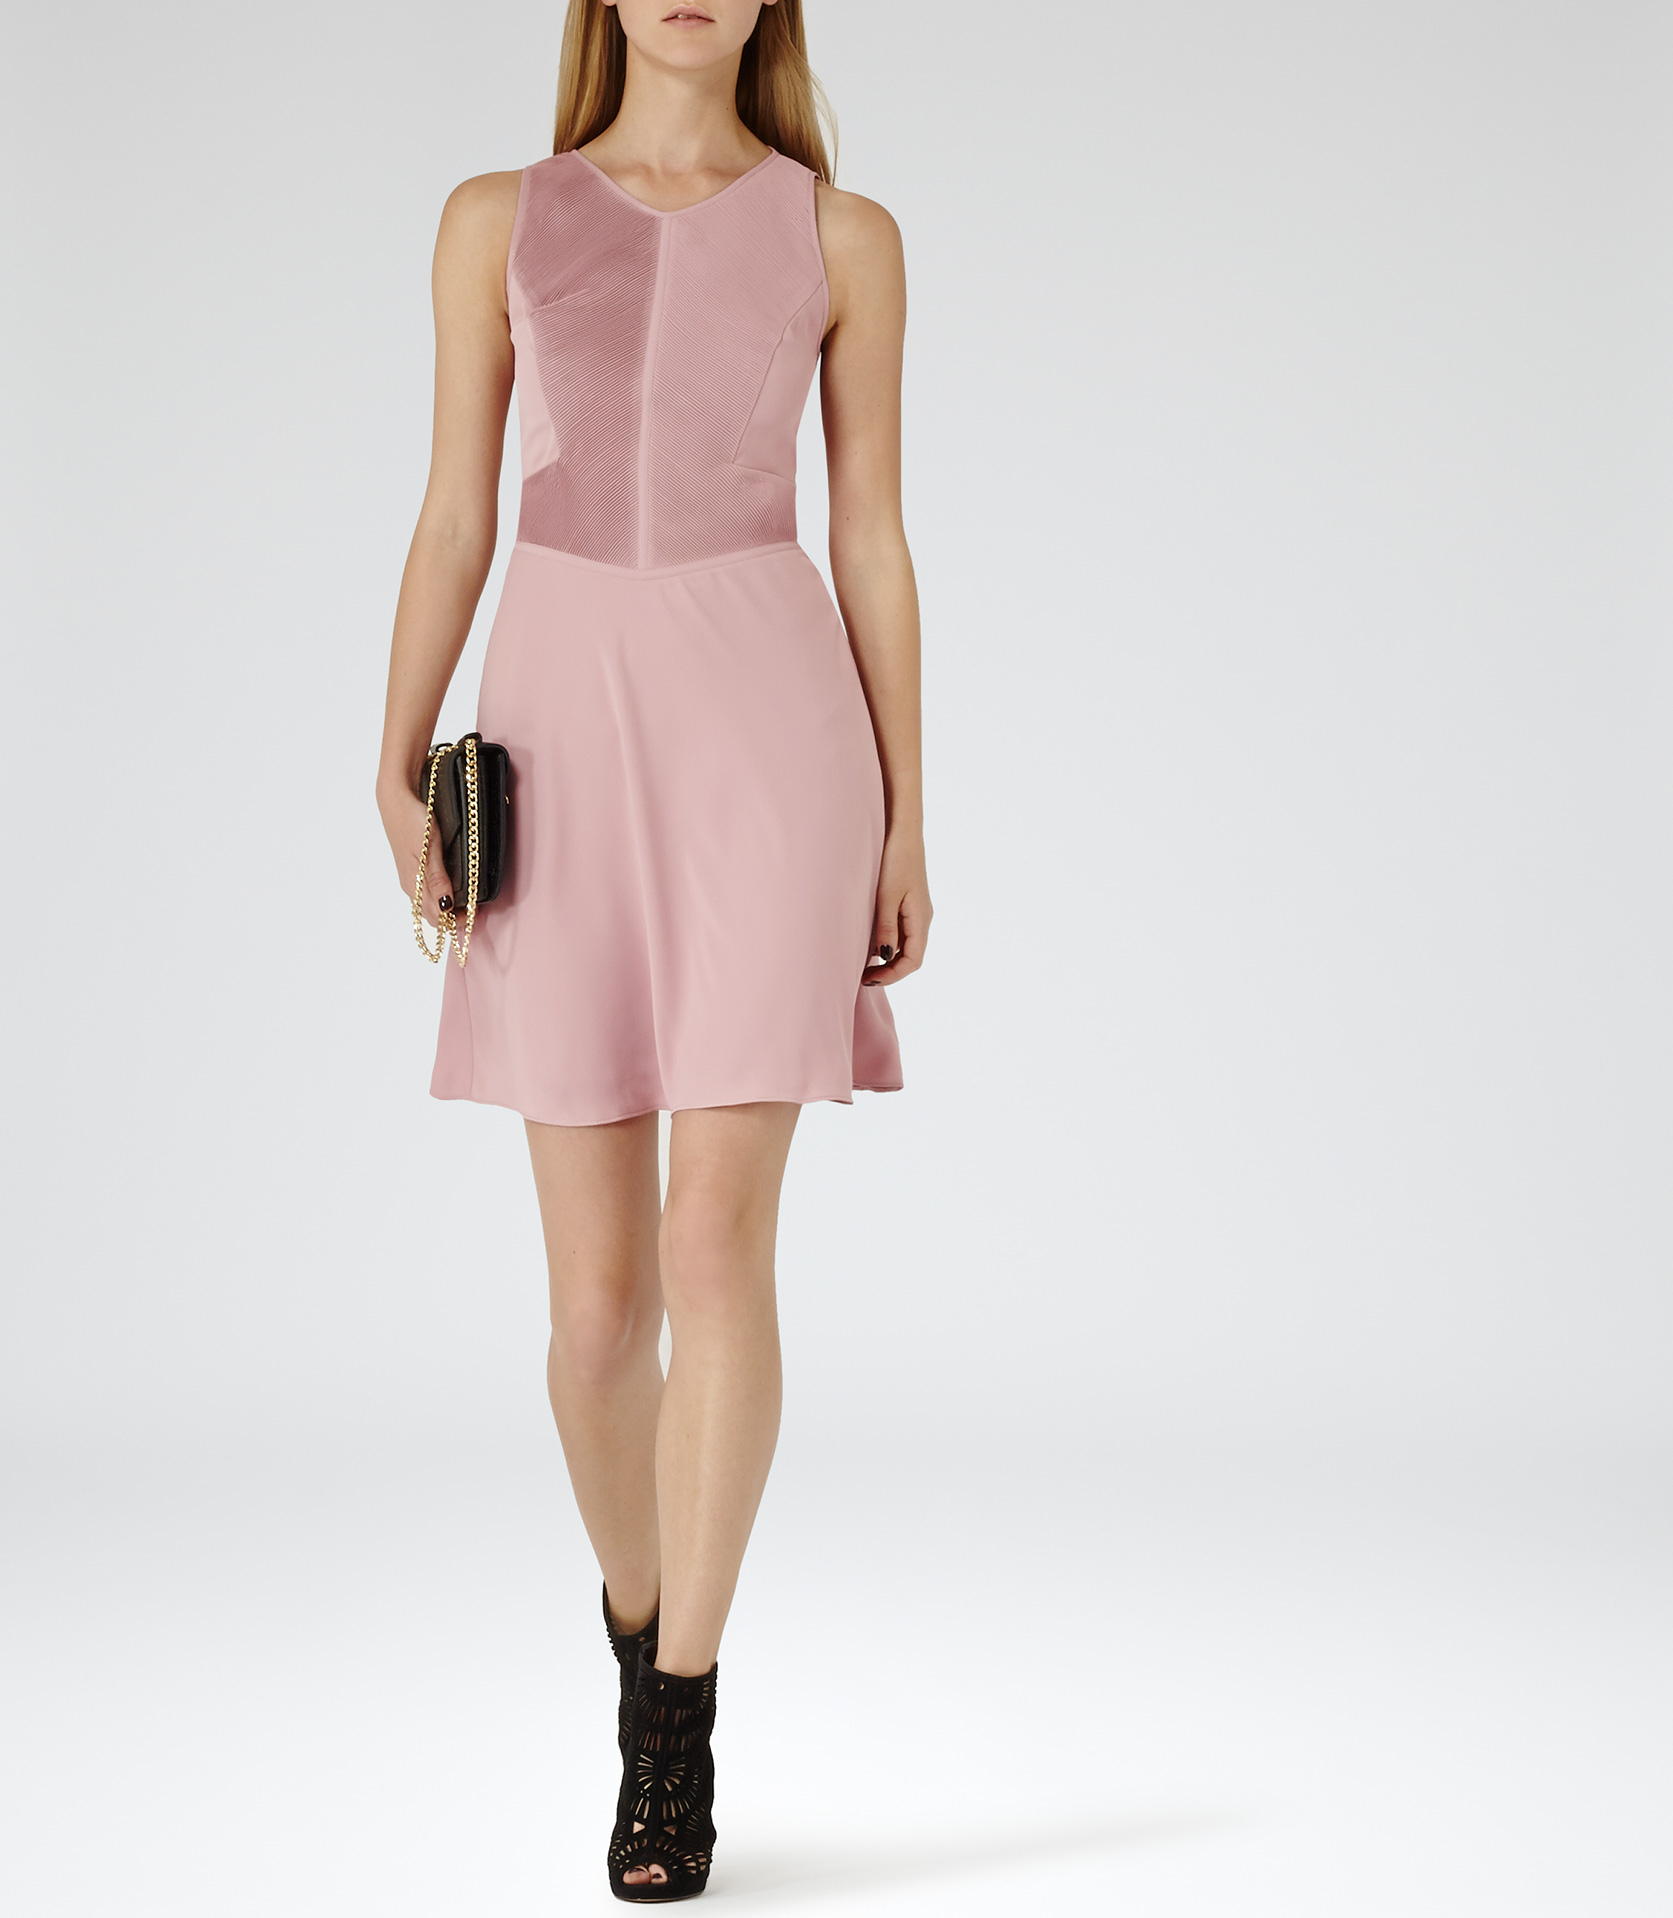 2d99440ed3c1 Reiss Rosa Pintuck Detail Dress in Pink - Lyst